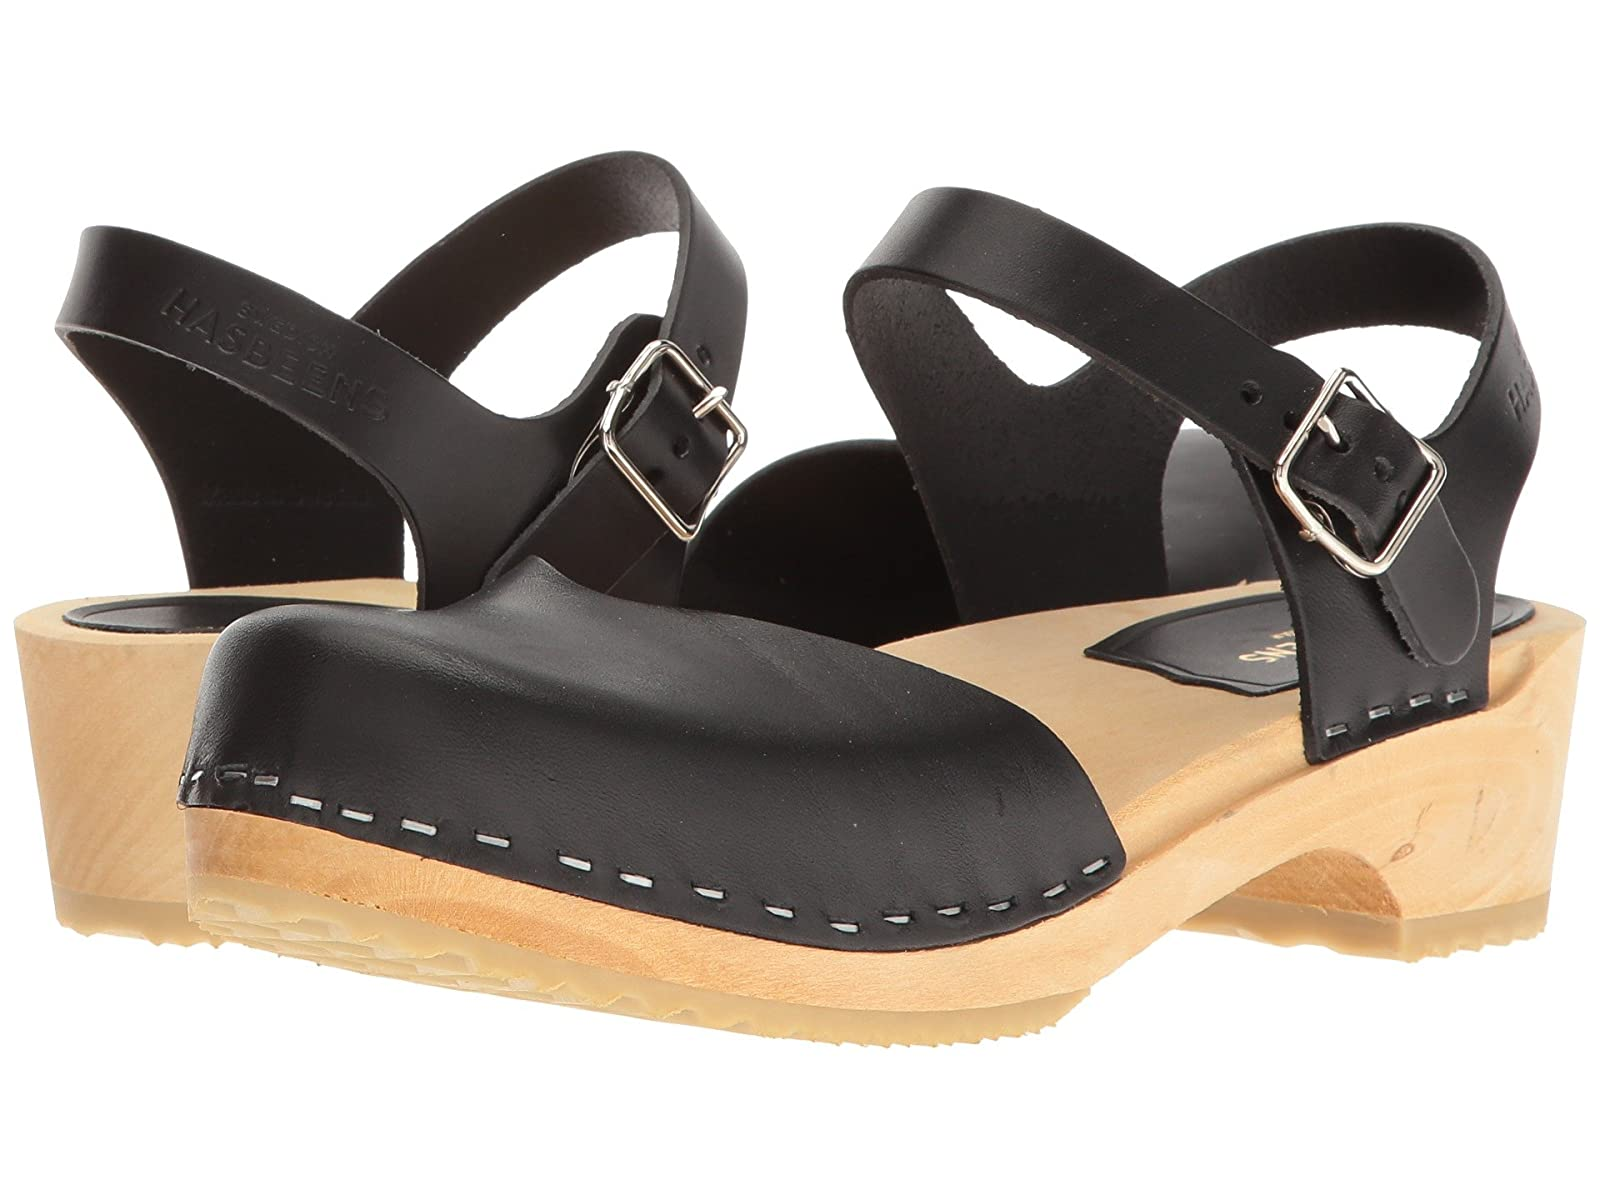 Swedish Hasbeens Covered LowAtmospheric grades have affordable shoes